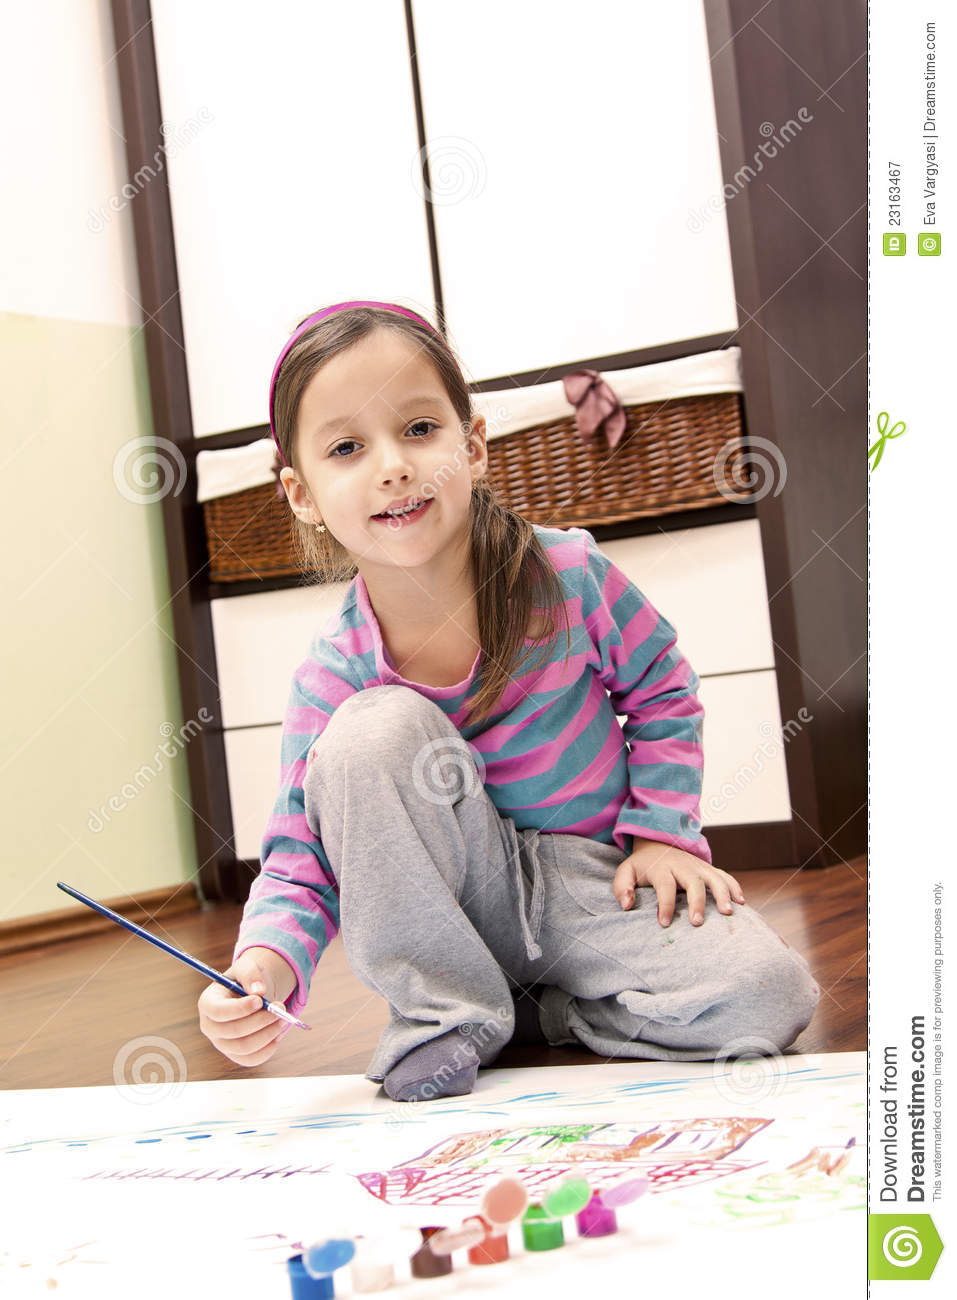 Little Girl Painting In Her Room Royalty Free Stock